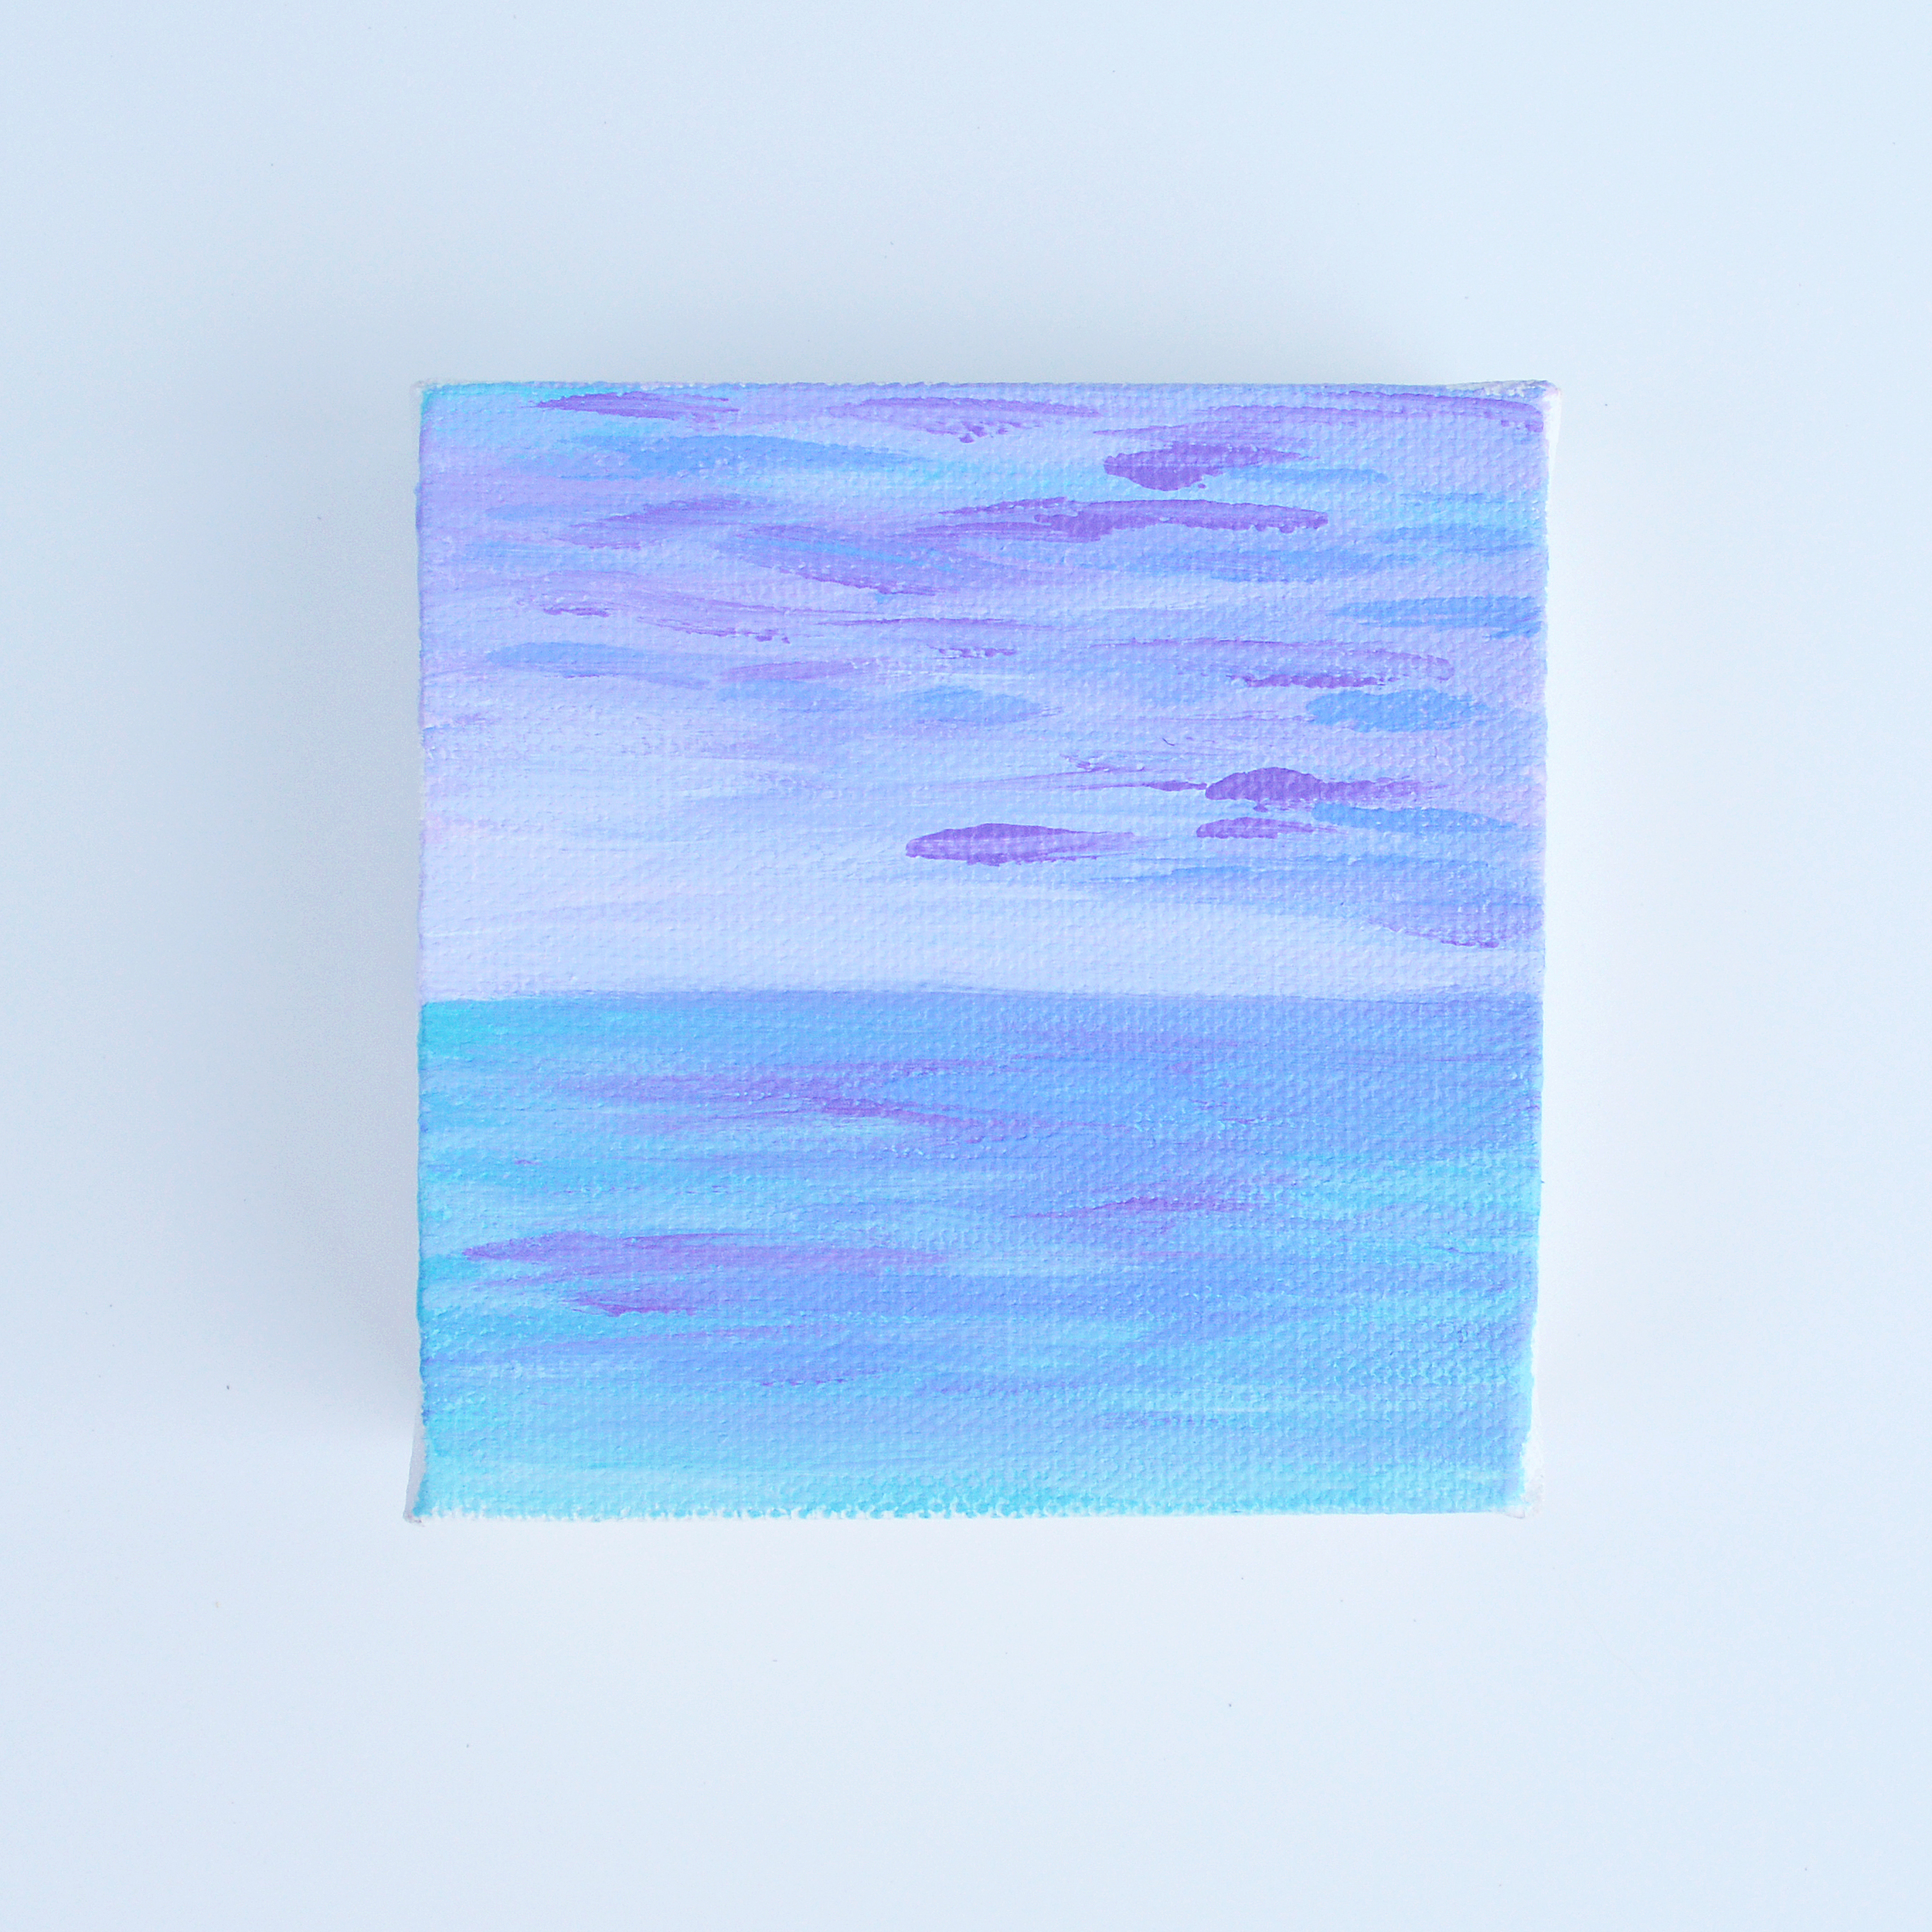 Lilac Seascape | Original Acrylic Painting by Hello Monday Design